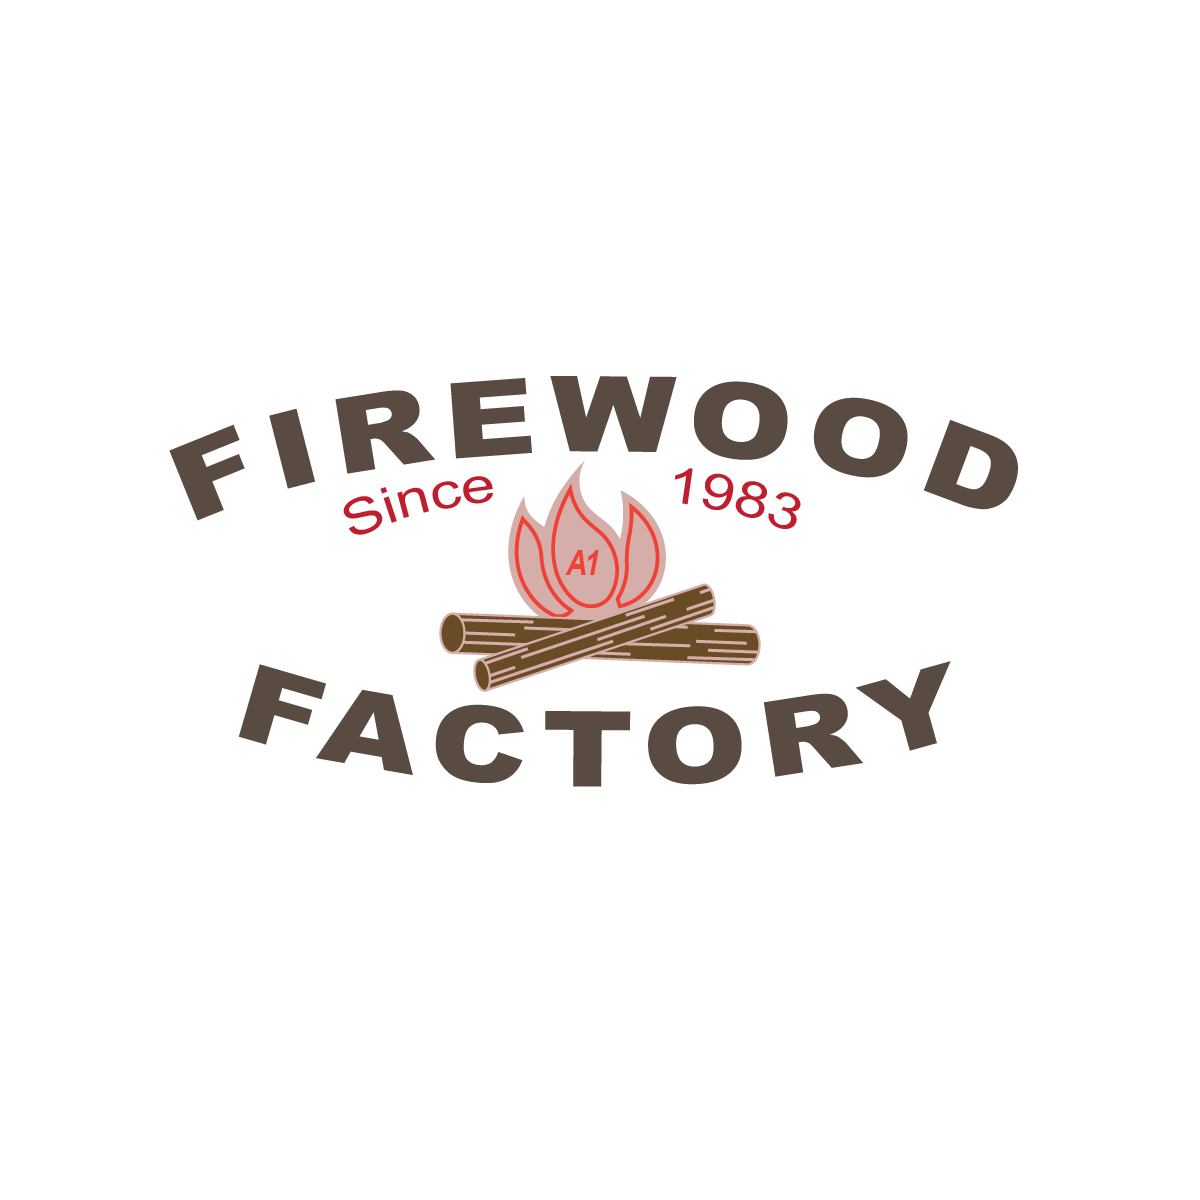 Firewood company in Toronto (logo concept)